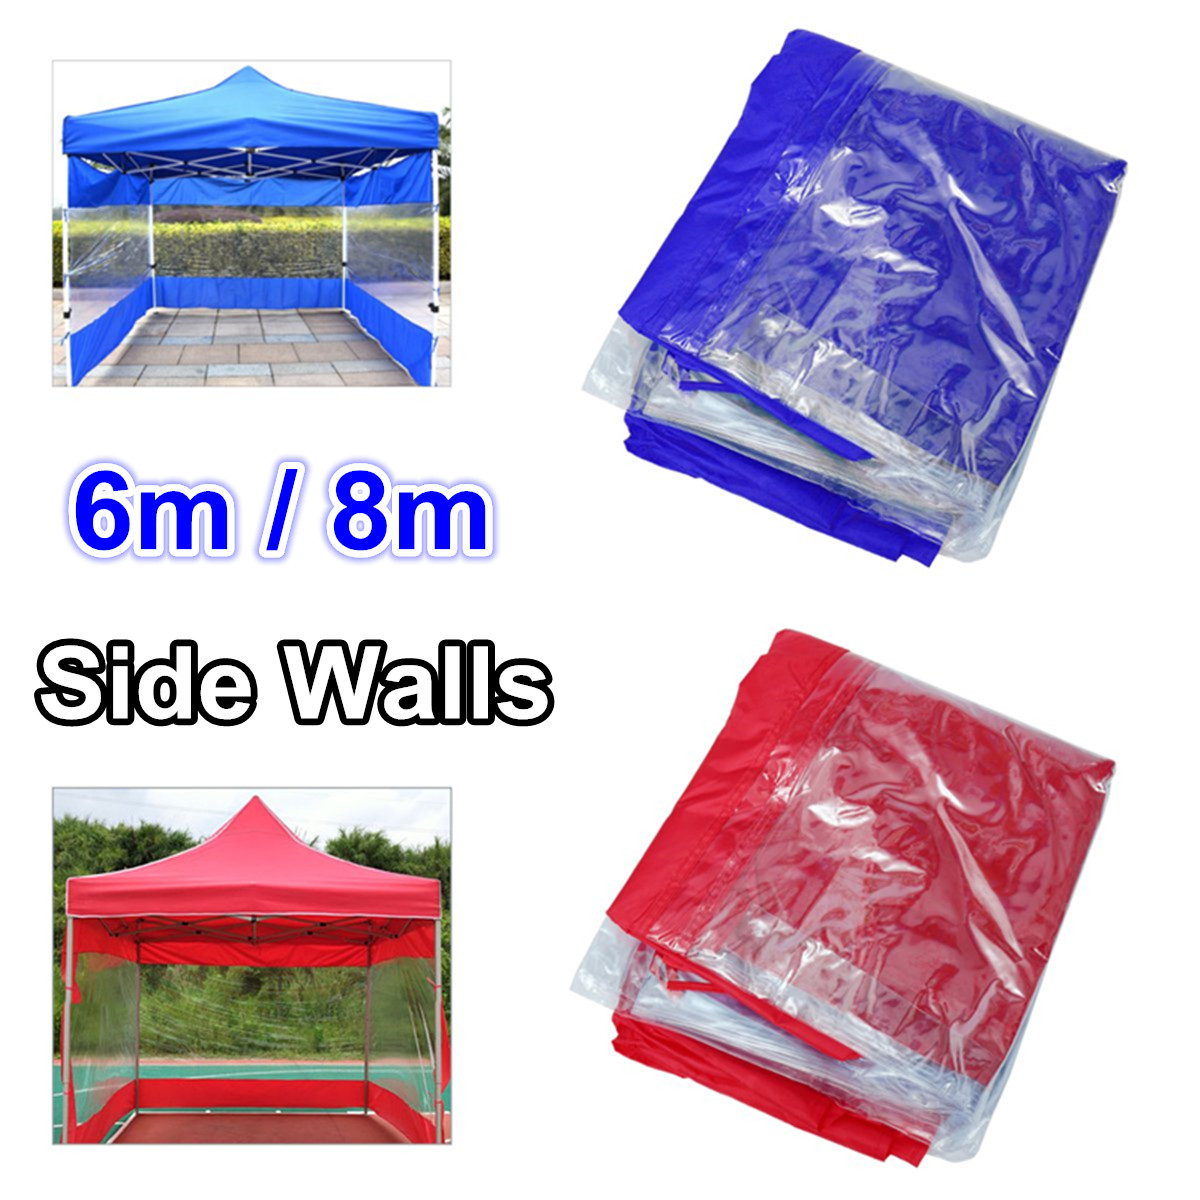 Polyester Canopy Side Wall Carport Garage Enclosure Shelter Tent Party Sun Wall Sunshade Shelter Tarp Sidewall Sunshade 6/8M|Tents| |  - title=